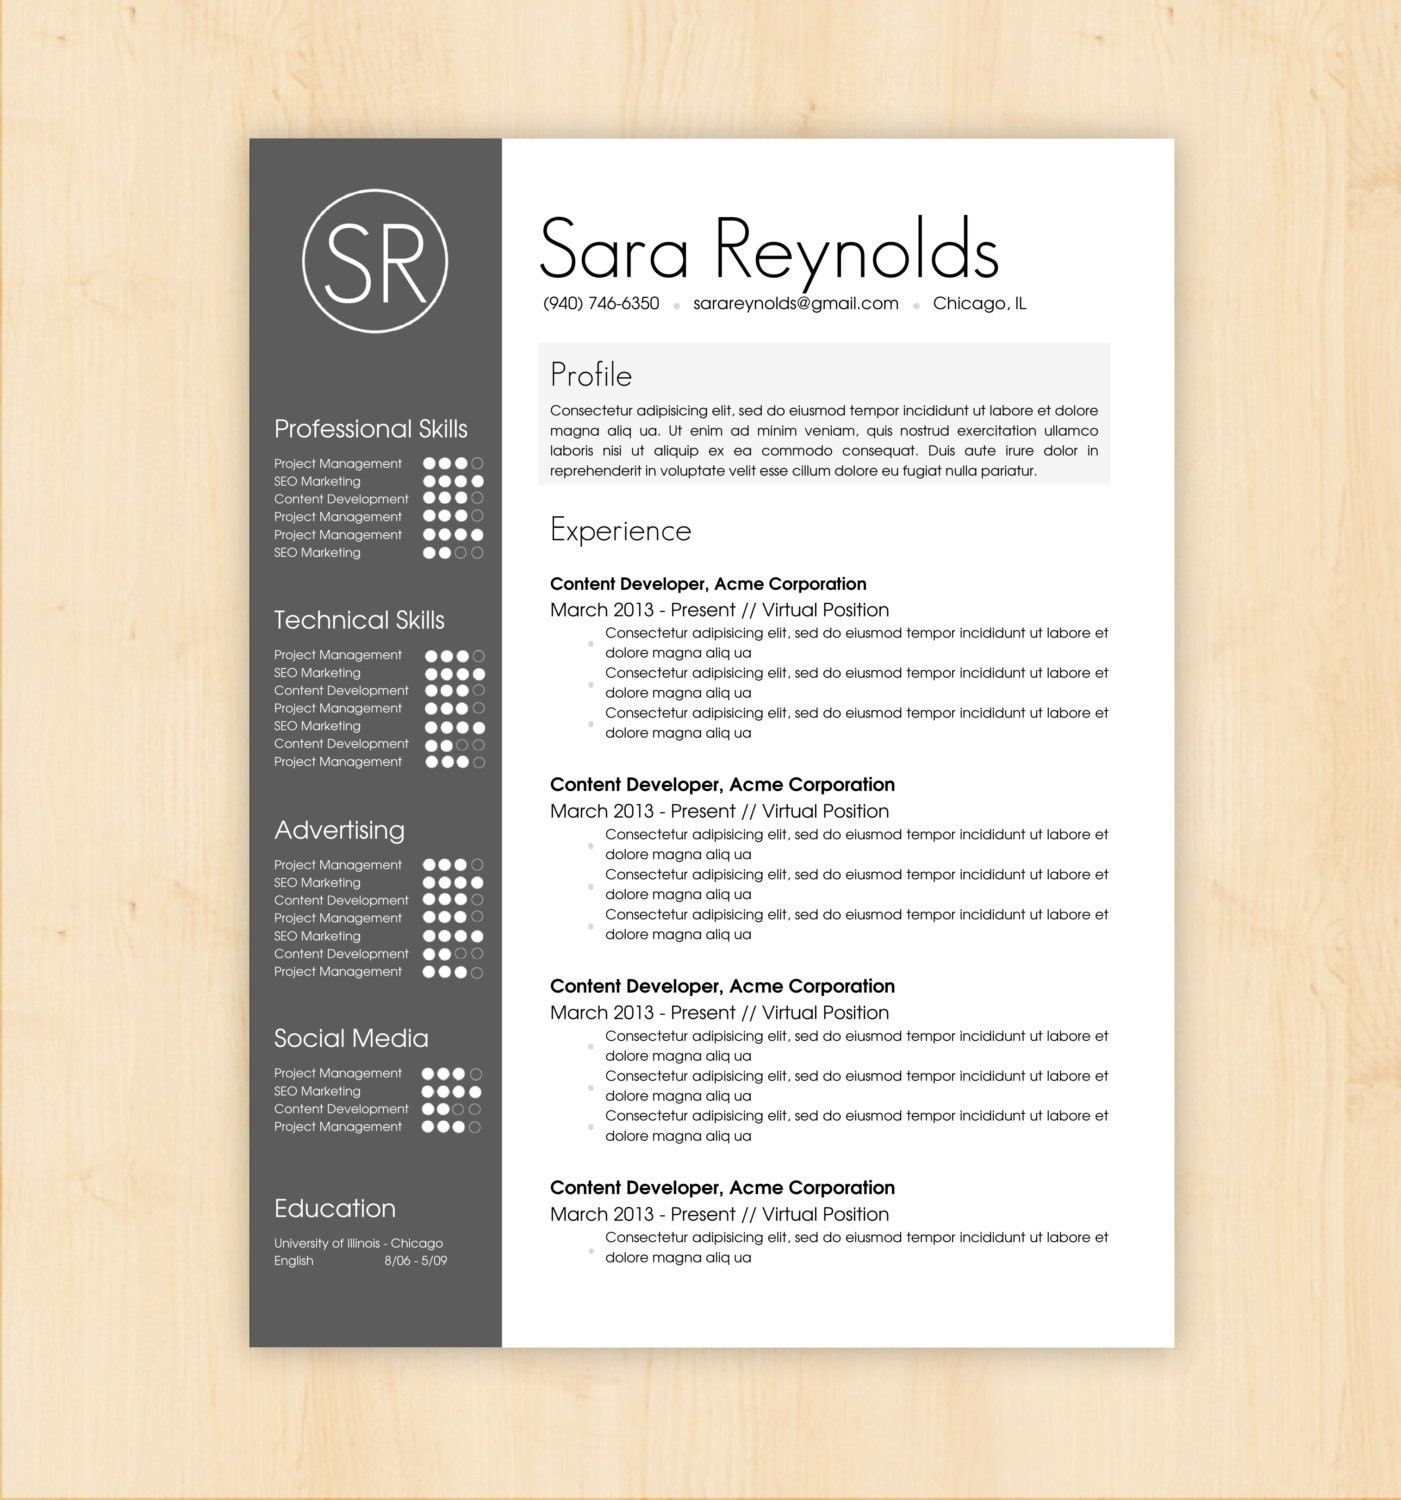 wharton resume template best design resume template the sara reynolds phdpress free templates cvfolio best for